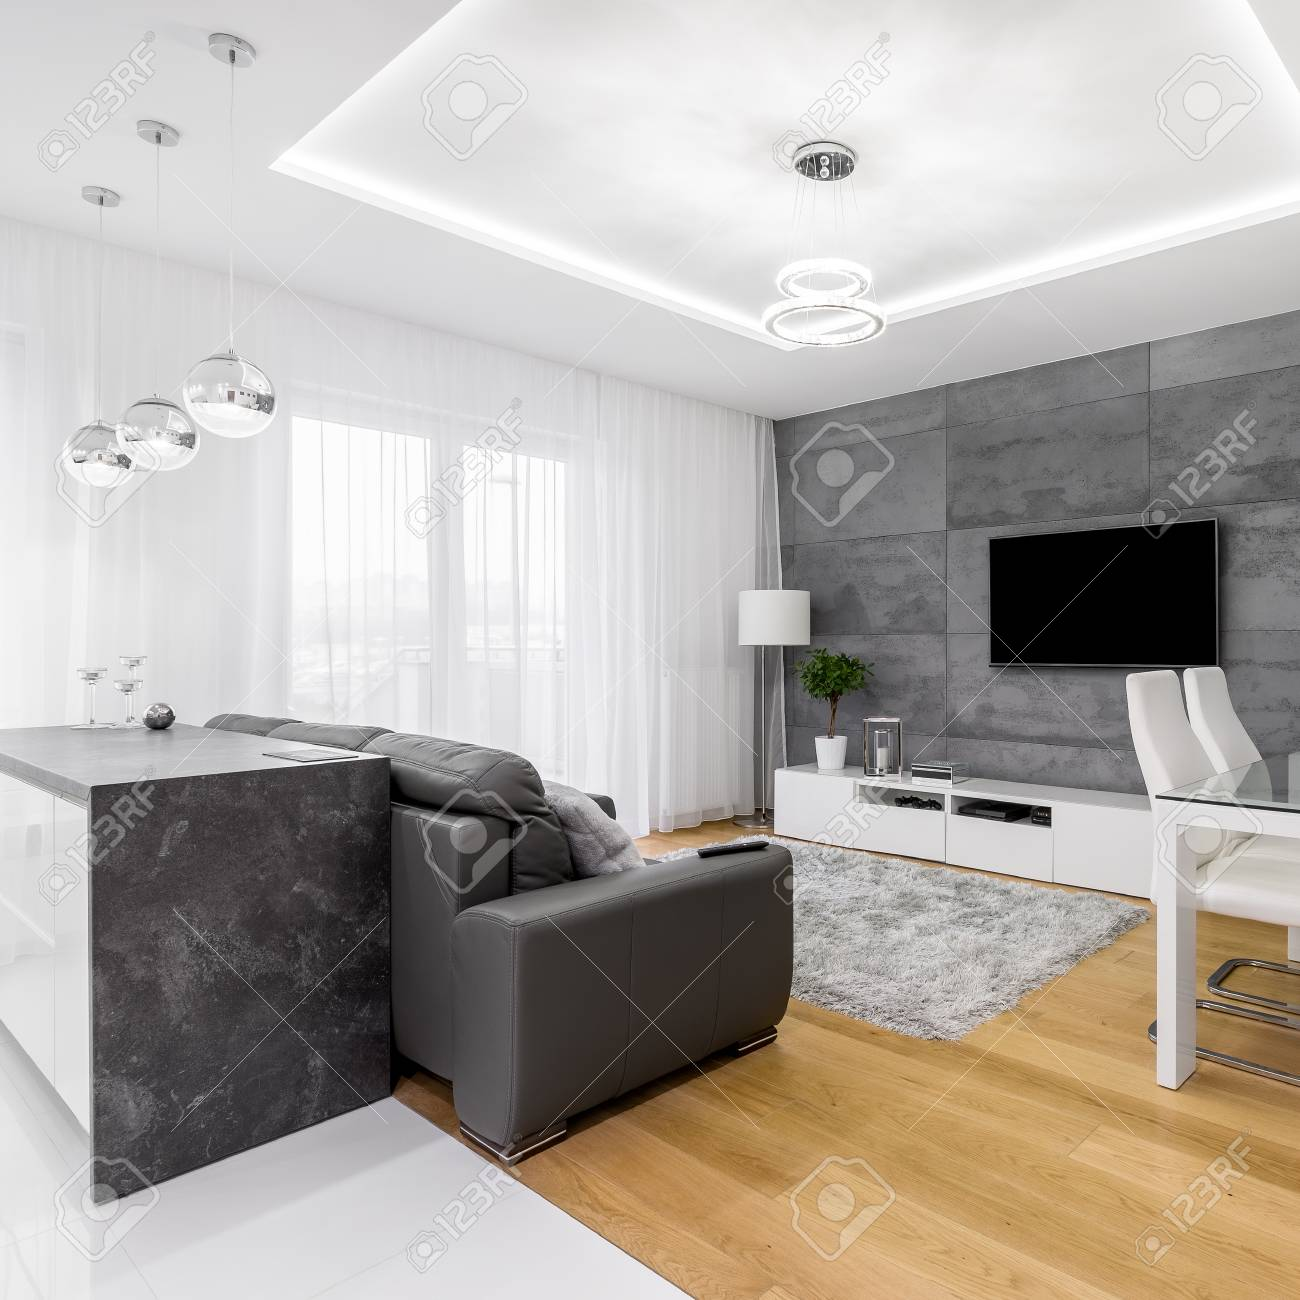 Gray And White, Modern Apartment With Sofa, Tv, Cabinet And Lamps ...